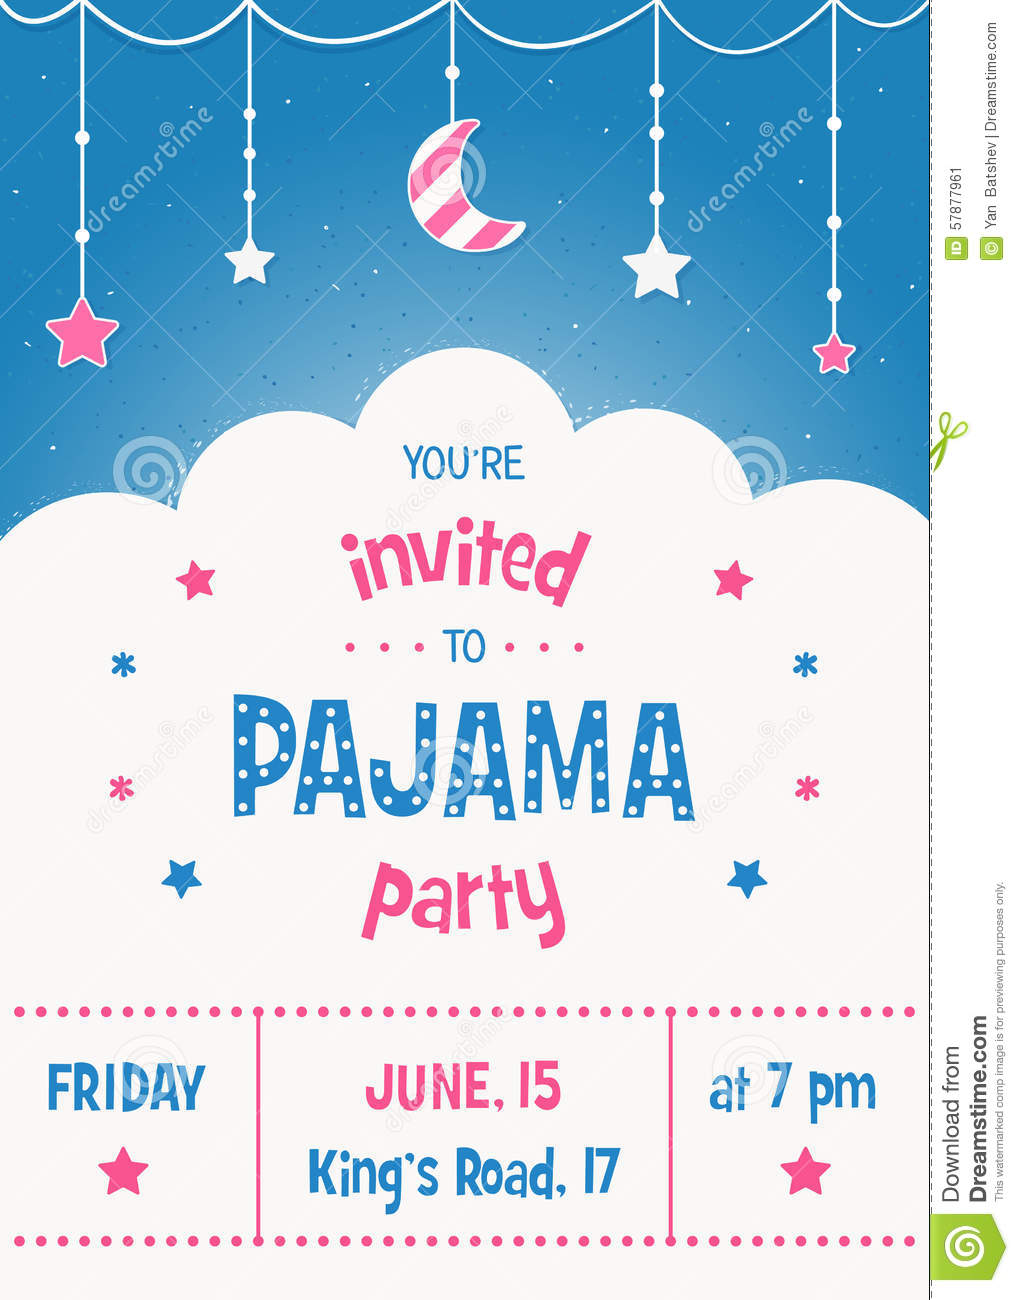 Pajama Party Invitation Card Template With Stars, Moon And Clouds ...